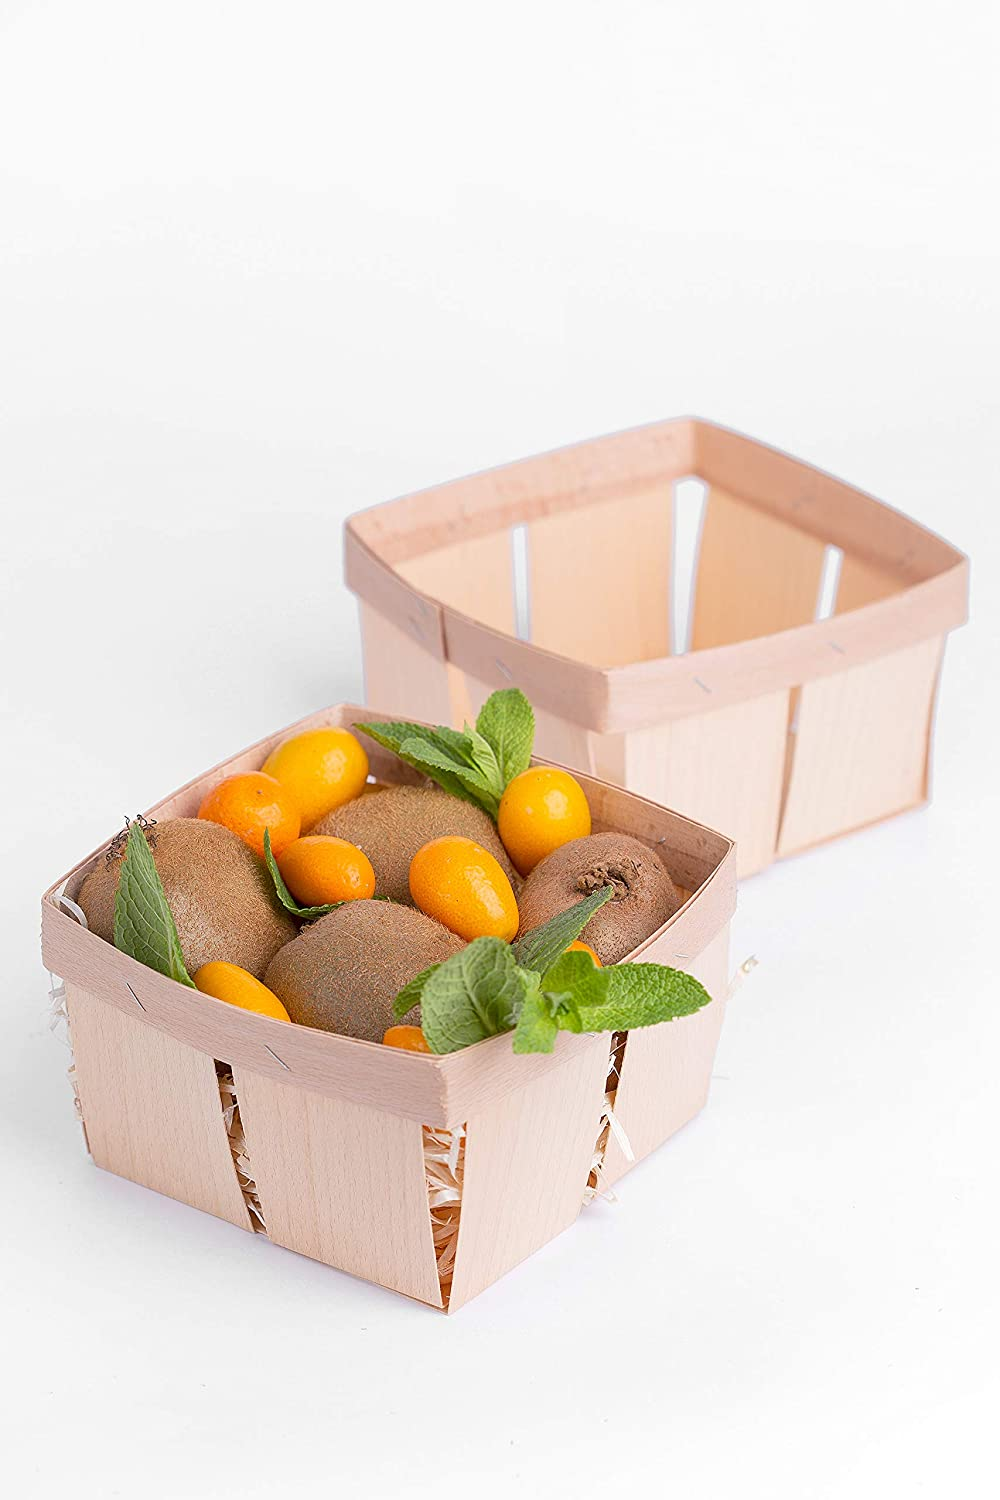 Wooden Berry Basket - Square Quart Vented Chipwood Picking Fruit and Berries Basket - Small Wood Baskets For Gifts Empty - Farmers Market Decor Containers - Pack Of 12